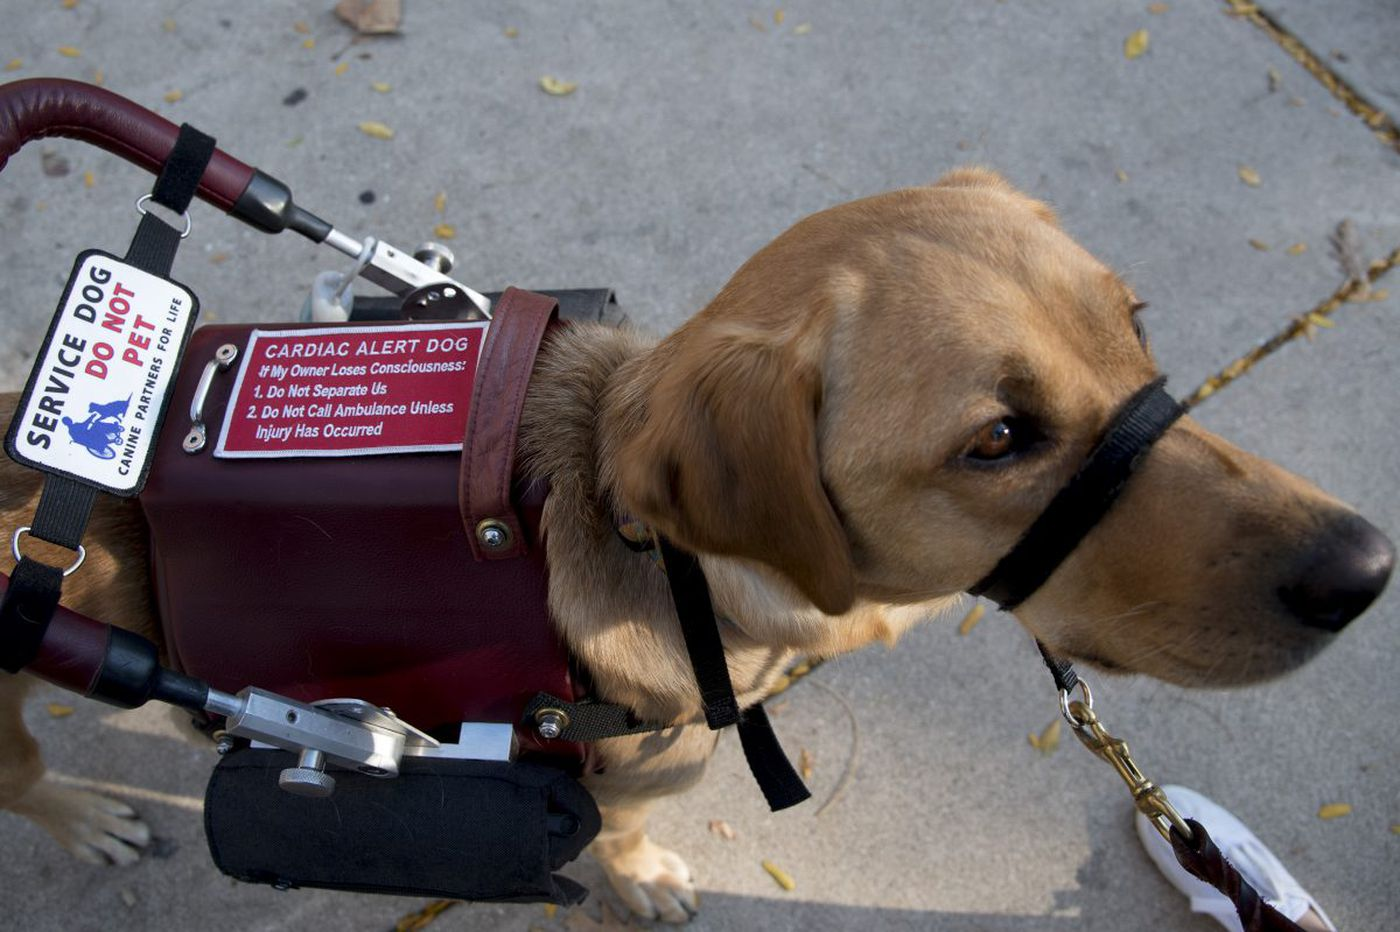 Veterans and their service dogs: Keep your paws off, please | Opinion